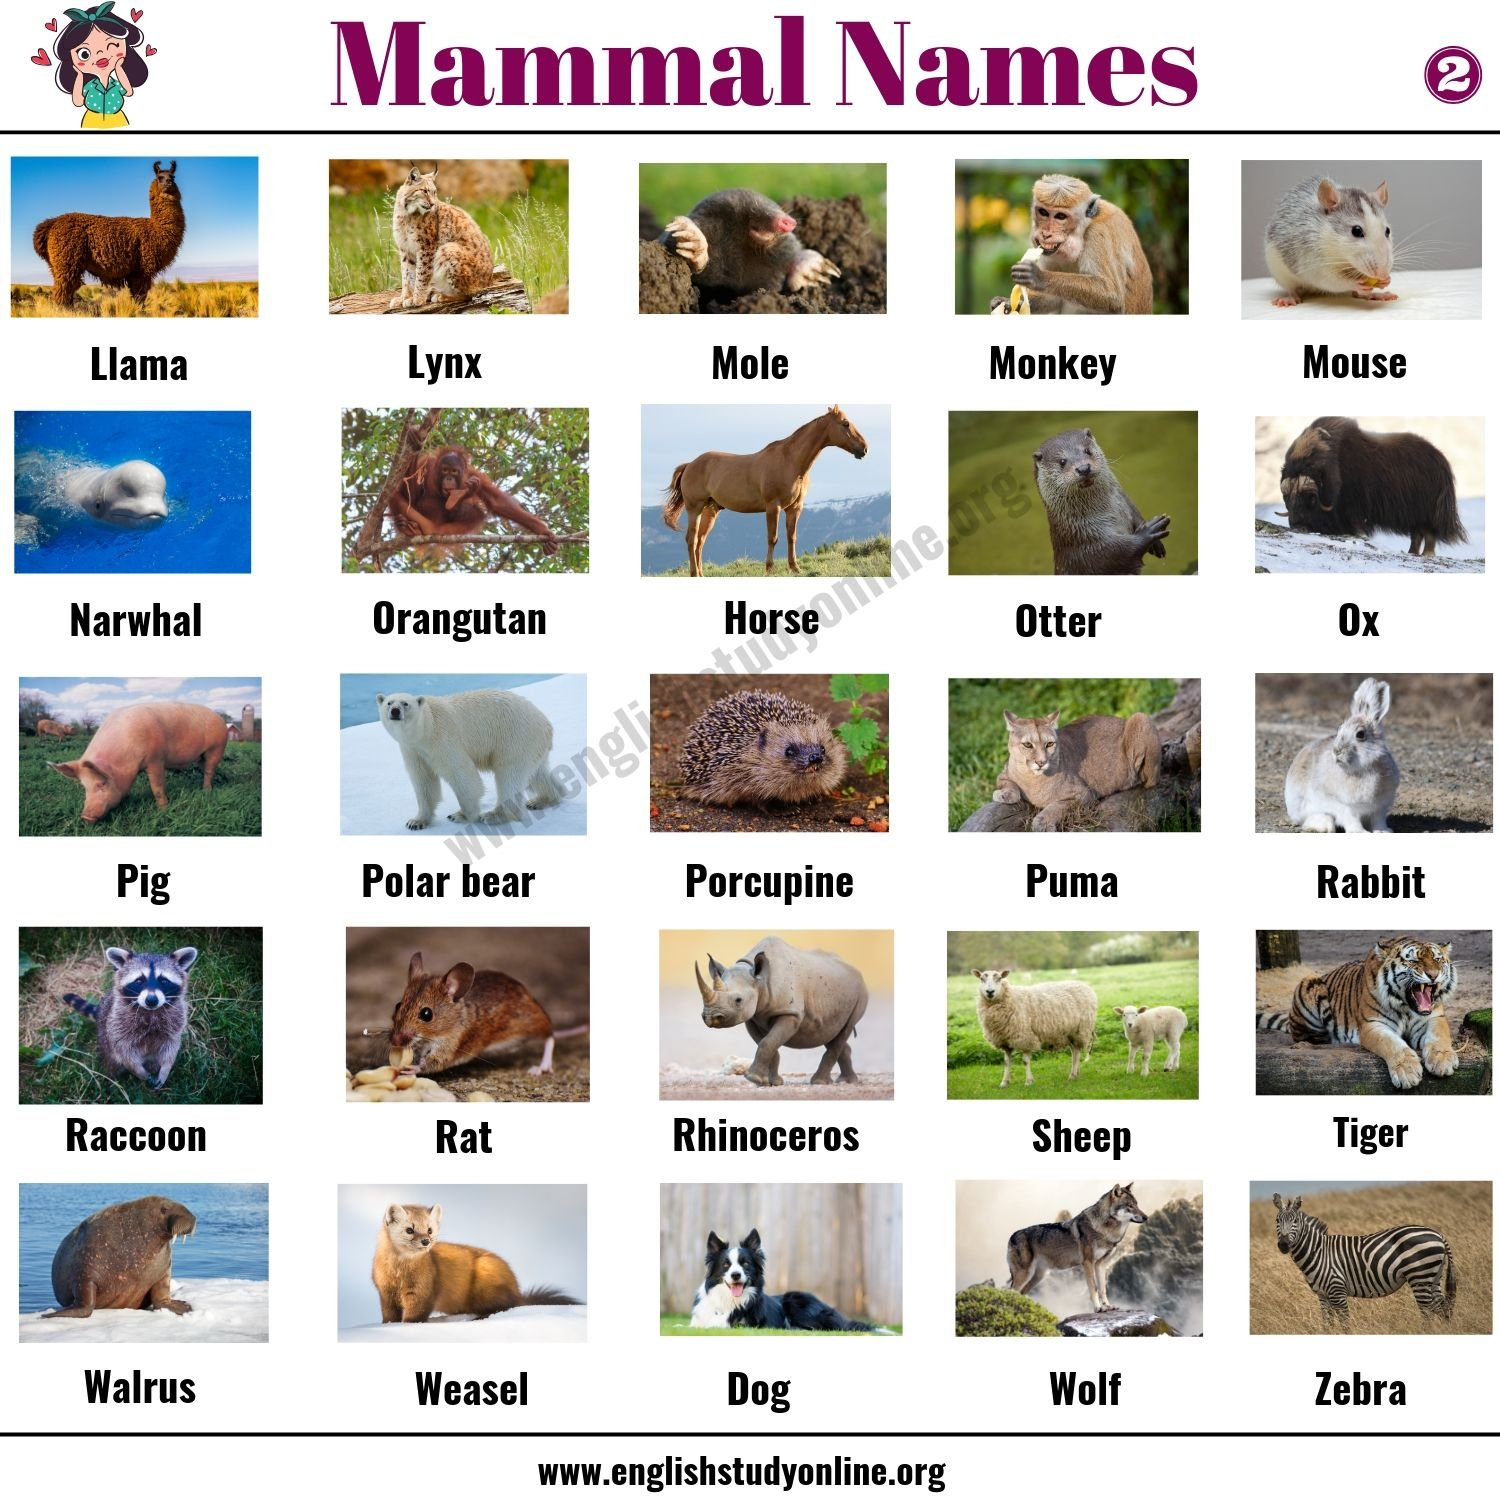 List of Mammals